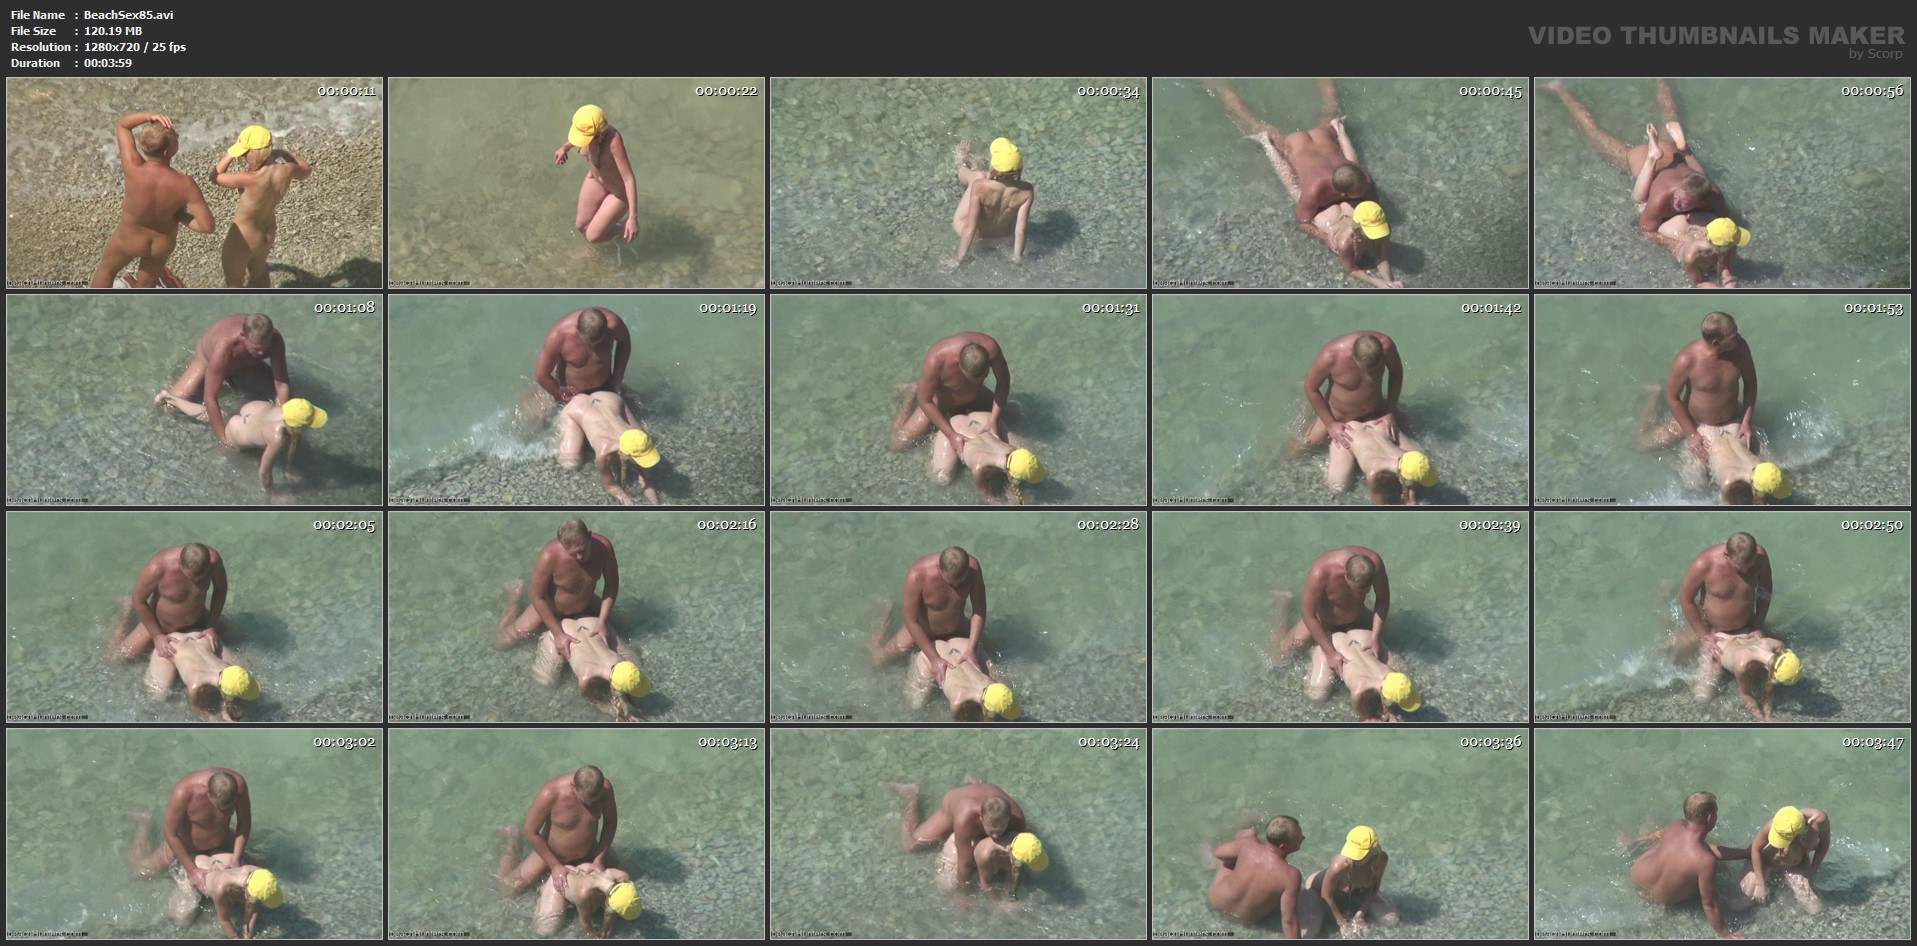 beachsex85-avi